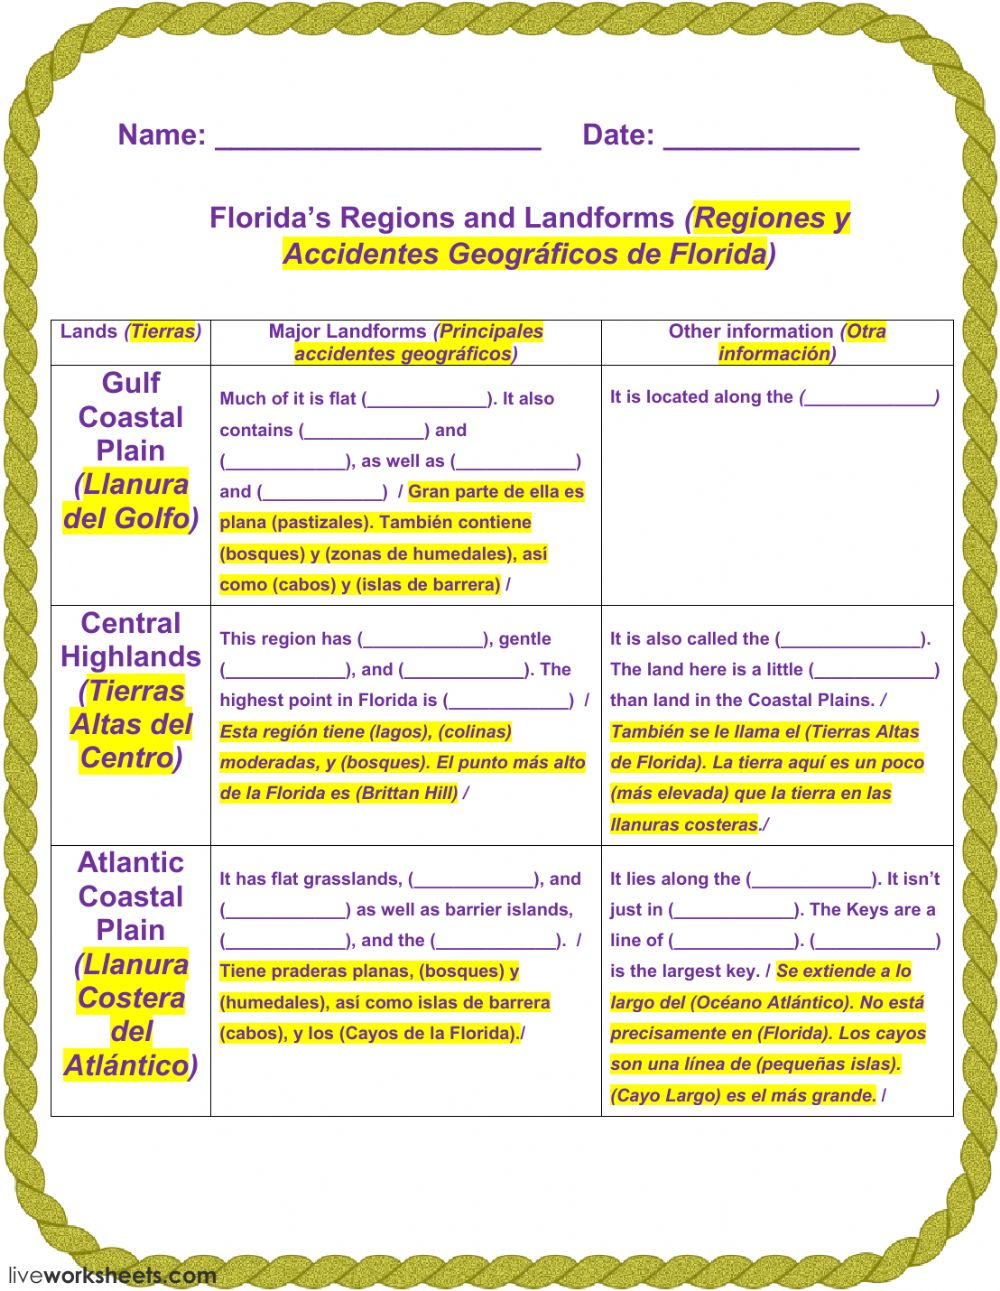 worksheet Landform Worksheet floridas regions and landforms 1 interactive worksheet barrier islands